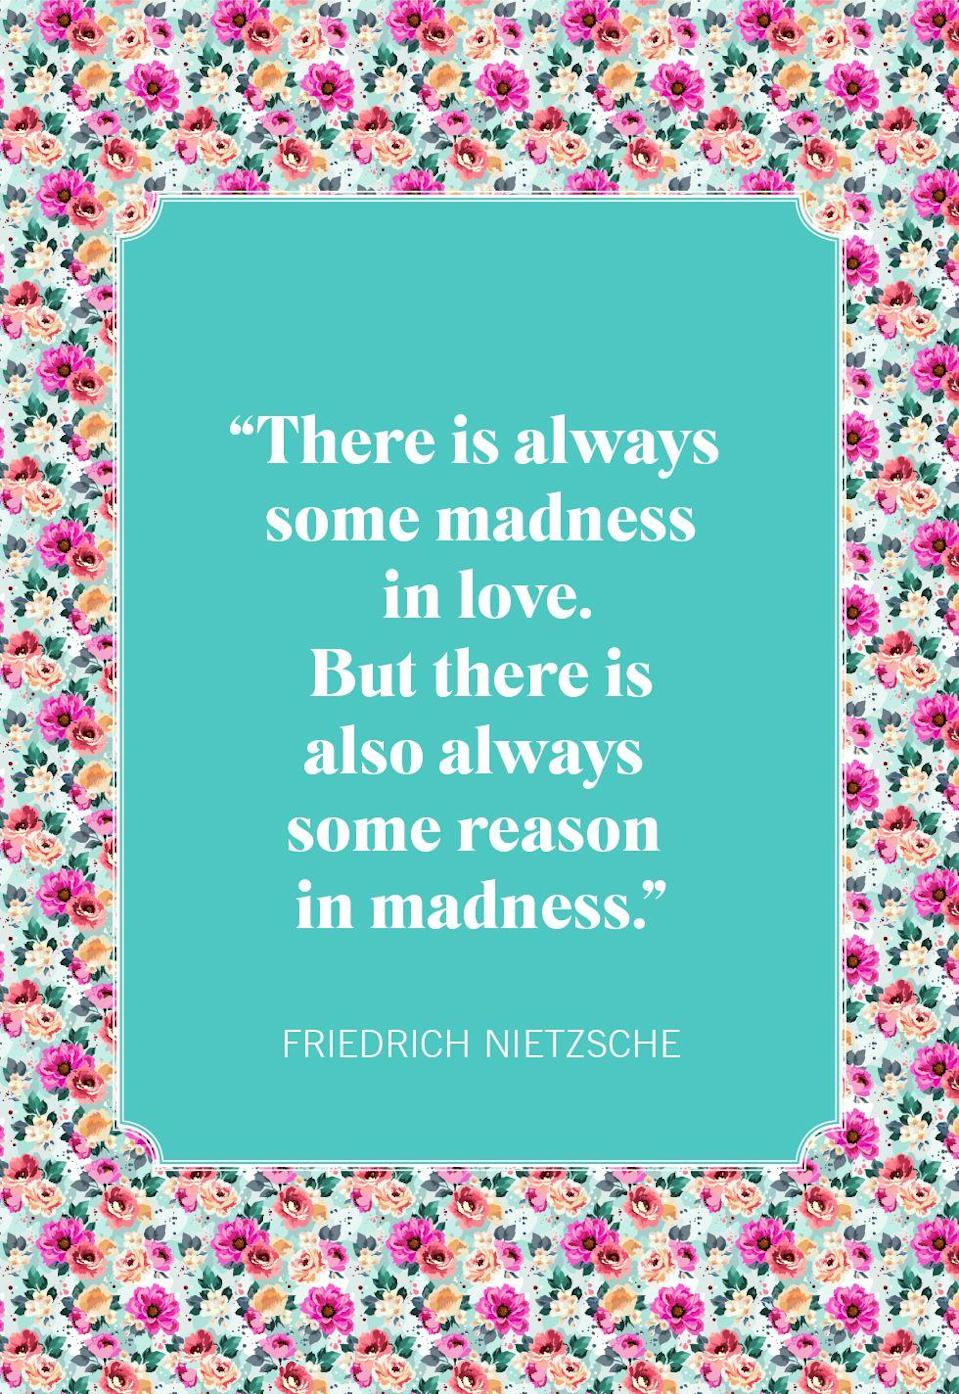 "<p>""There is always some madness in love. But there is also always some reason in madness.""</p>"